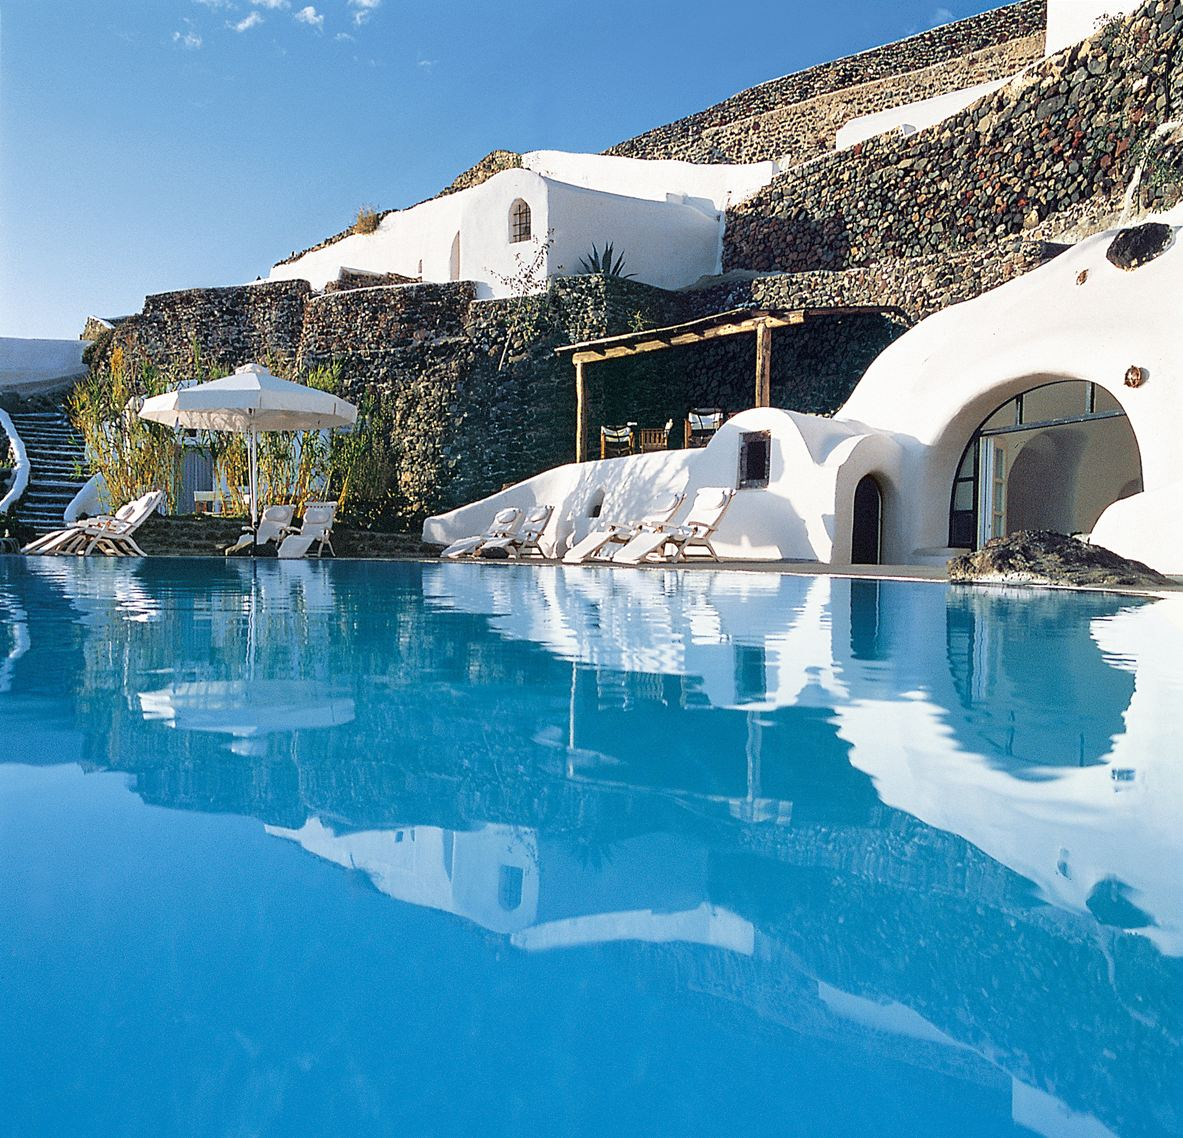 Santorini Greece hotel